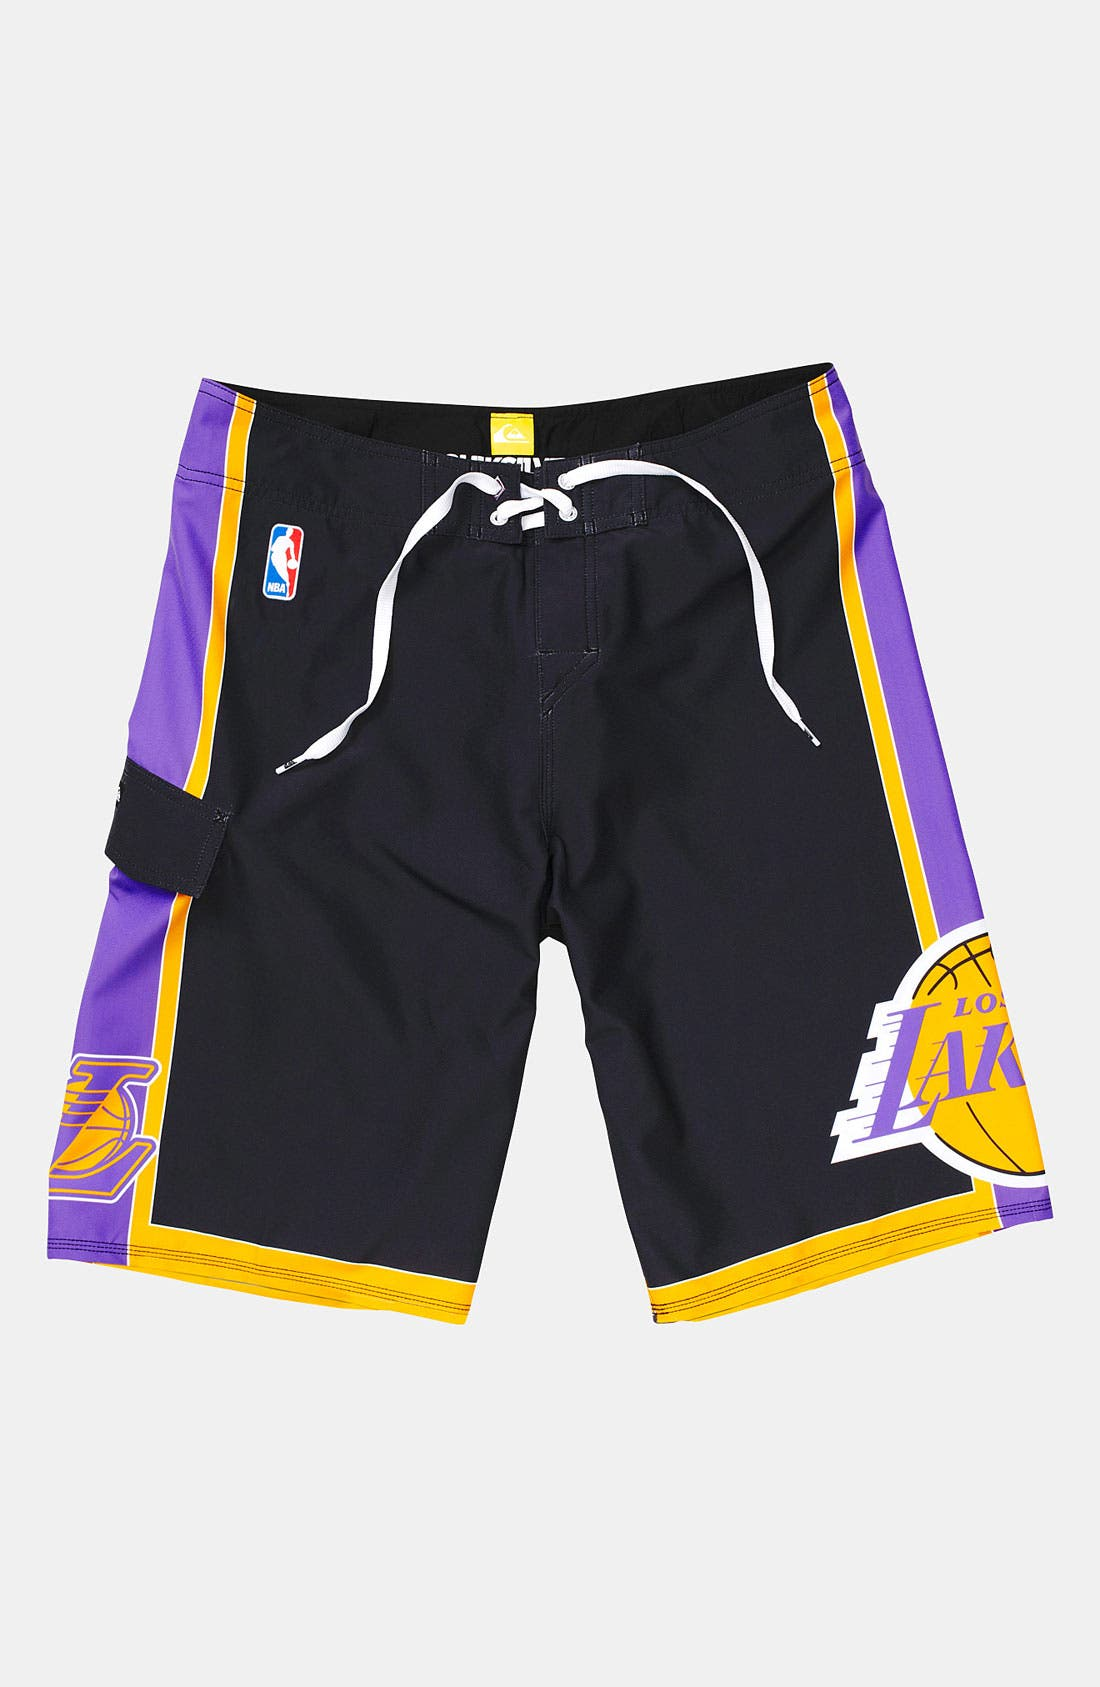 Main Image - Quiksilver 'Lakers' Board Shorts (Big Boys)